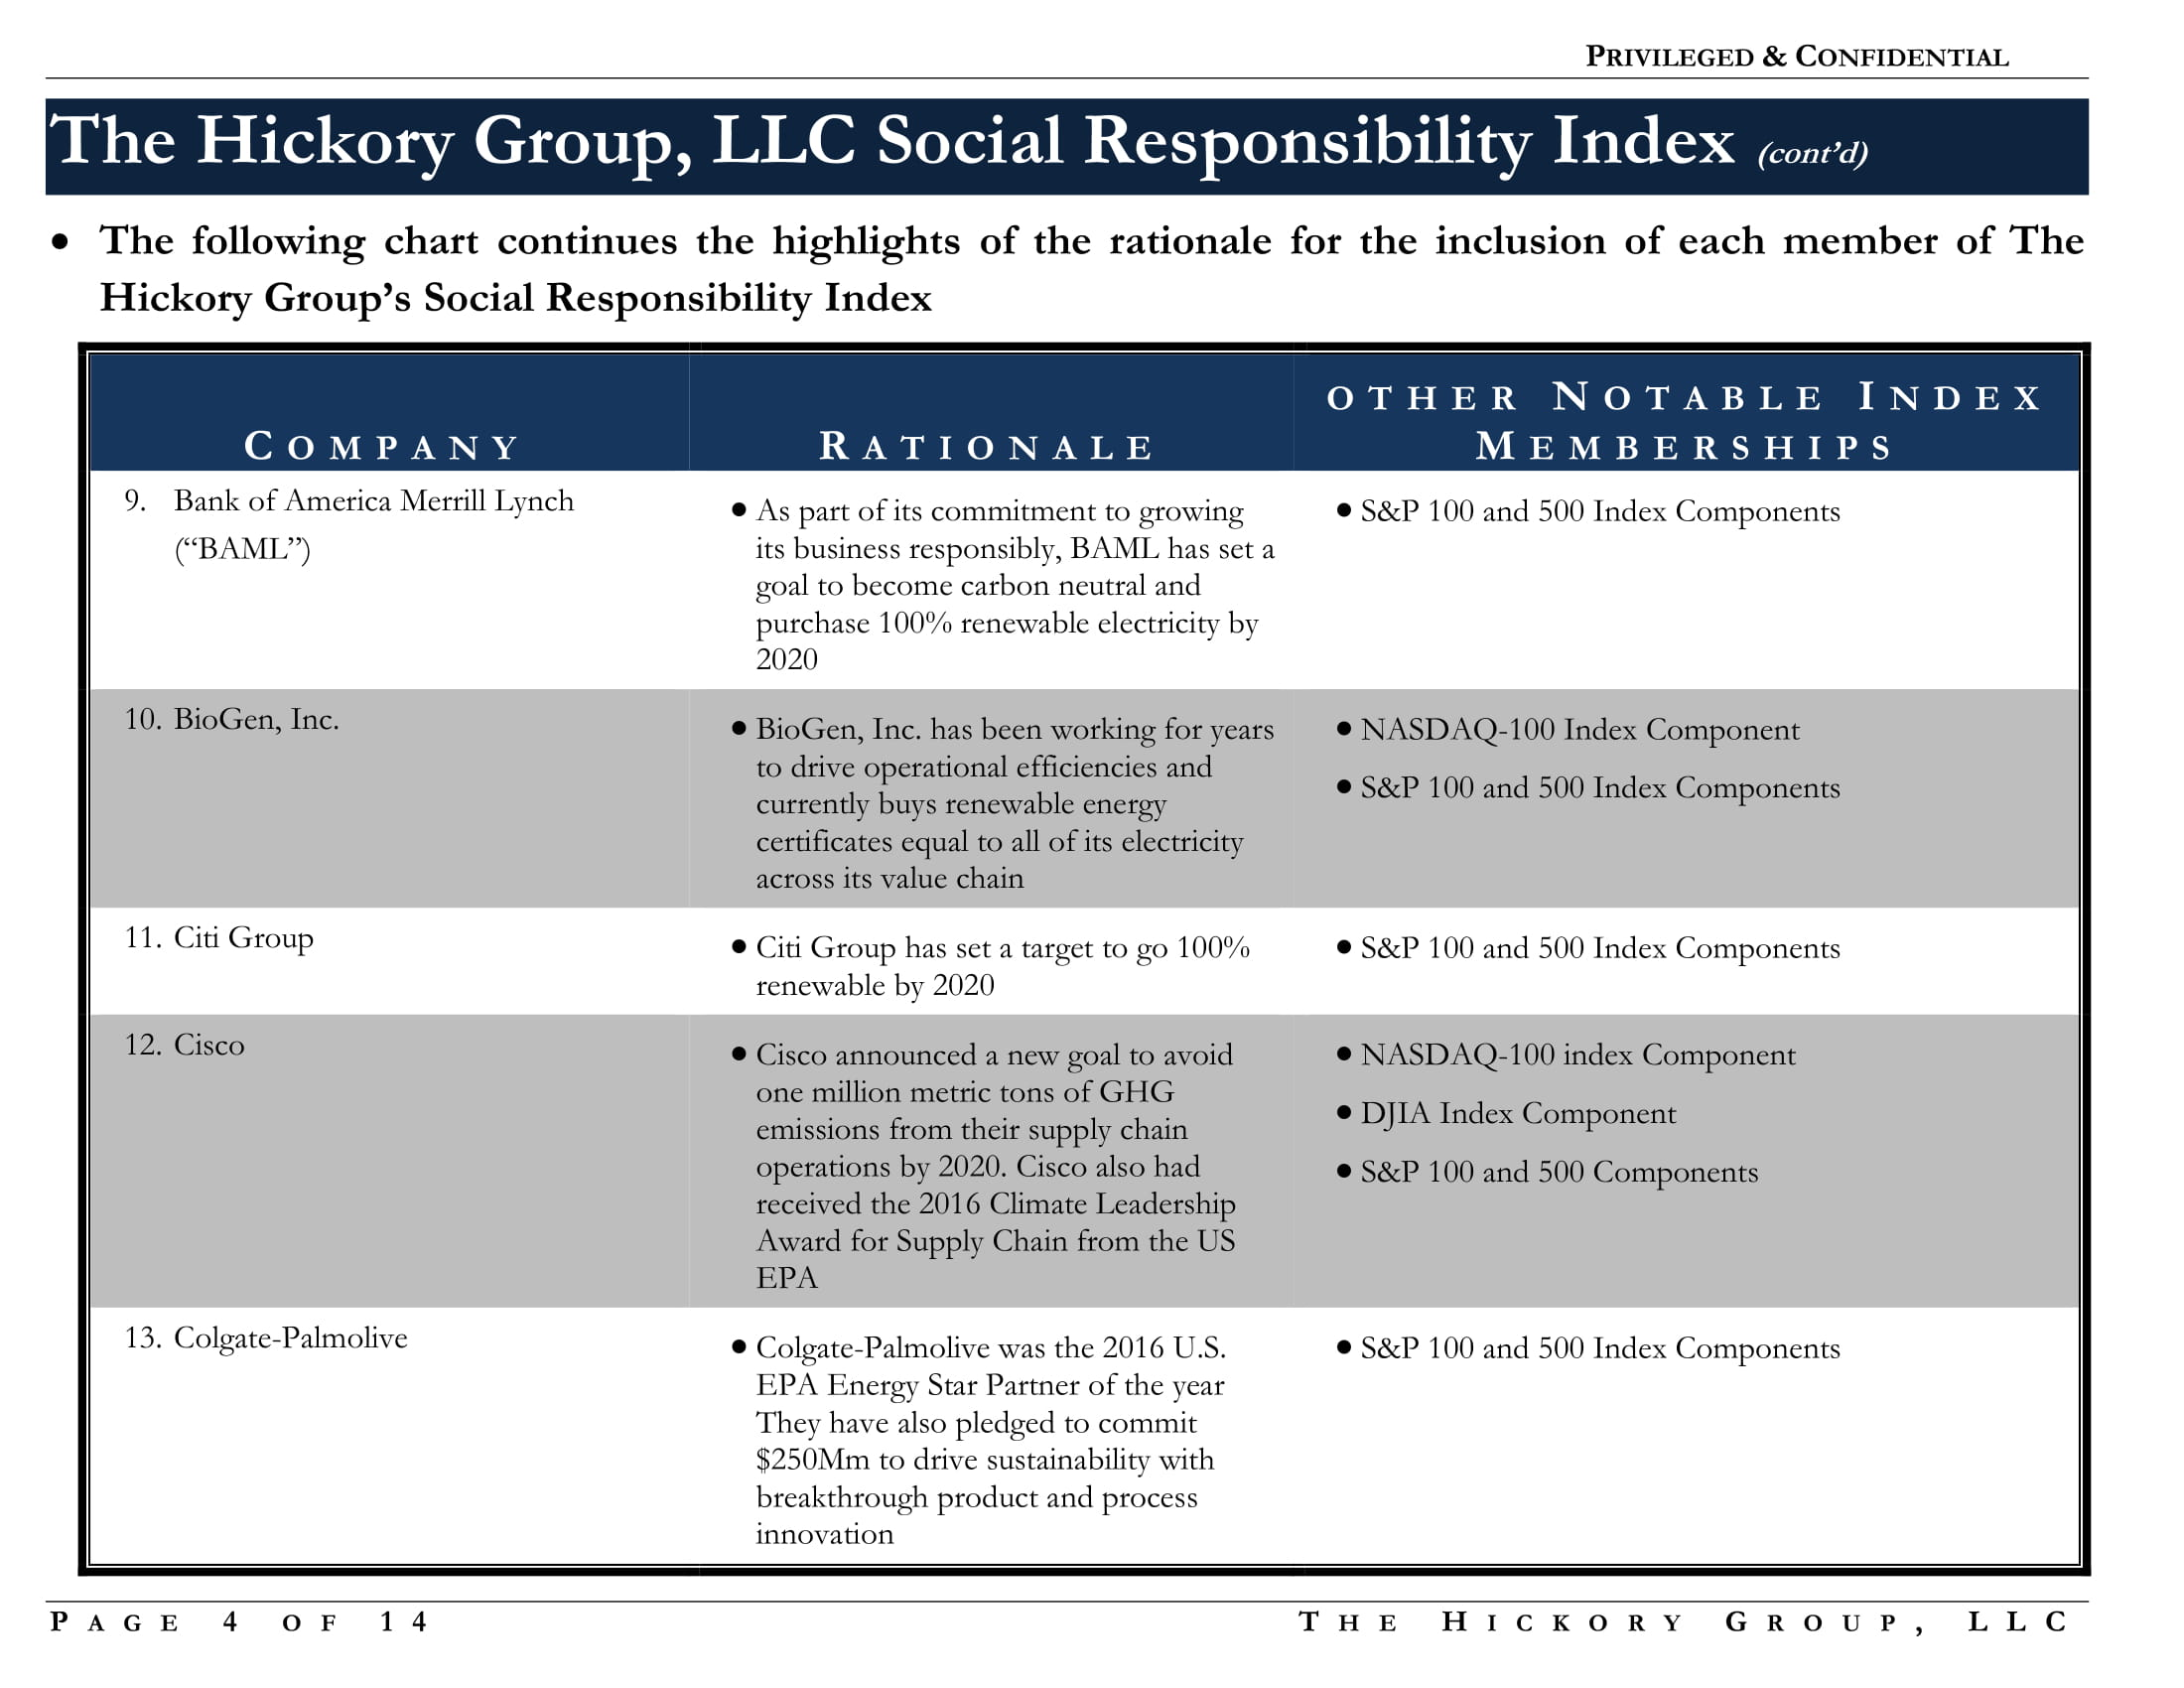 FINAL Social Responsibility Index  Notes and Rationale (7 October 2017) Privileged and Confidential-04.jpg